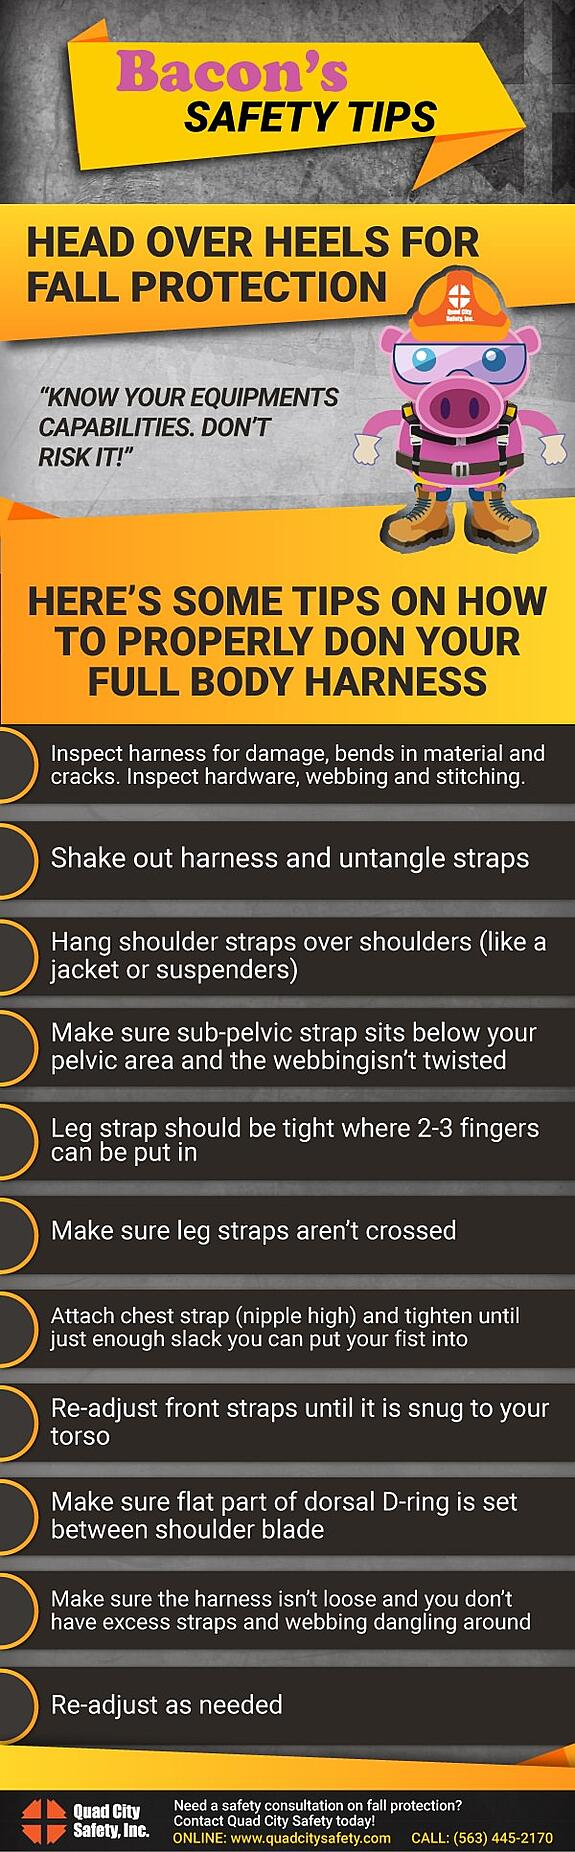 Bacon's Safety Tips Head over heels for fall protection.